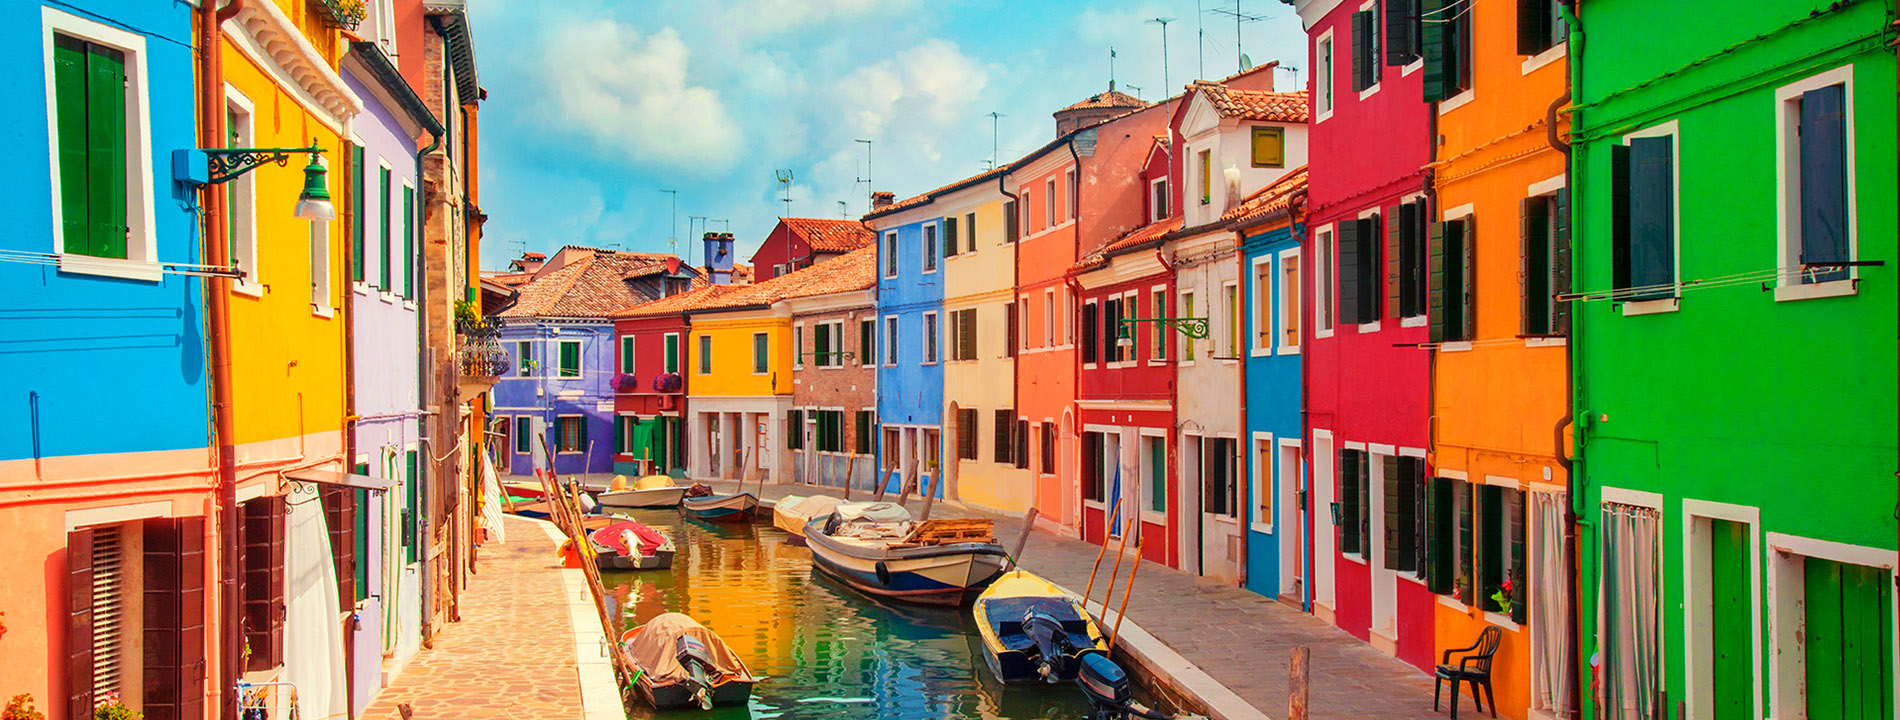 5 Interesting Facts About Venice You Probably Didn't Know